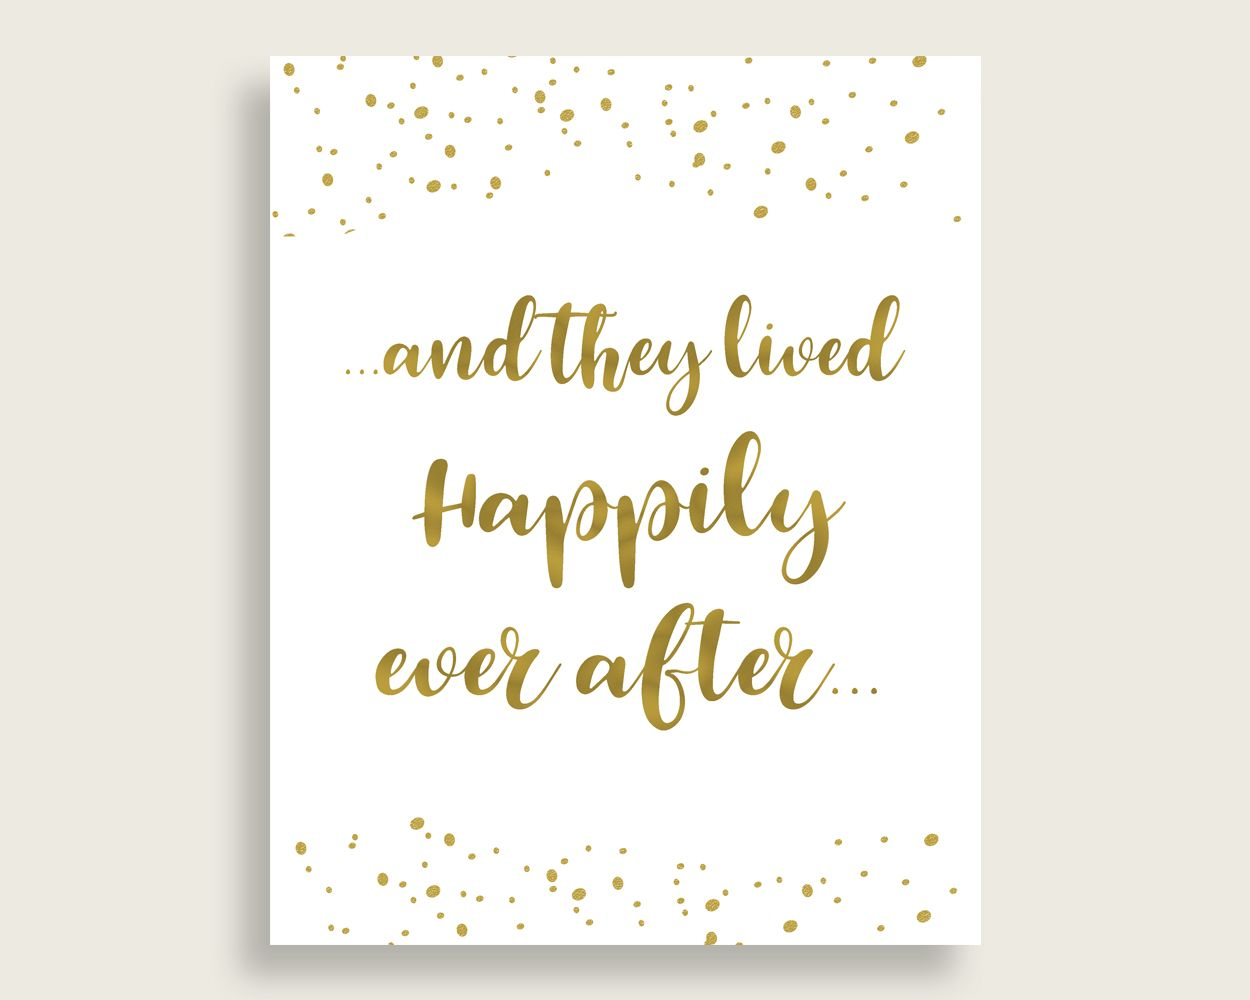 aa7c787d06b Happily Ever After Bridal Shower Happily Ever After Gold Bridal Shower  Happily Ever After Bridal Shower Gold Happily Ever After Gold G2ZNX  bride   bidal ...